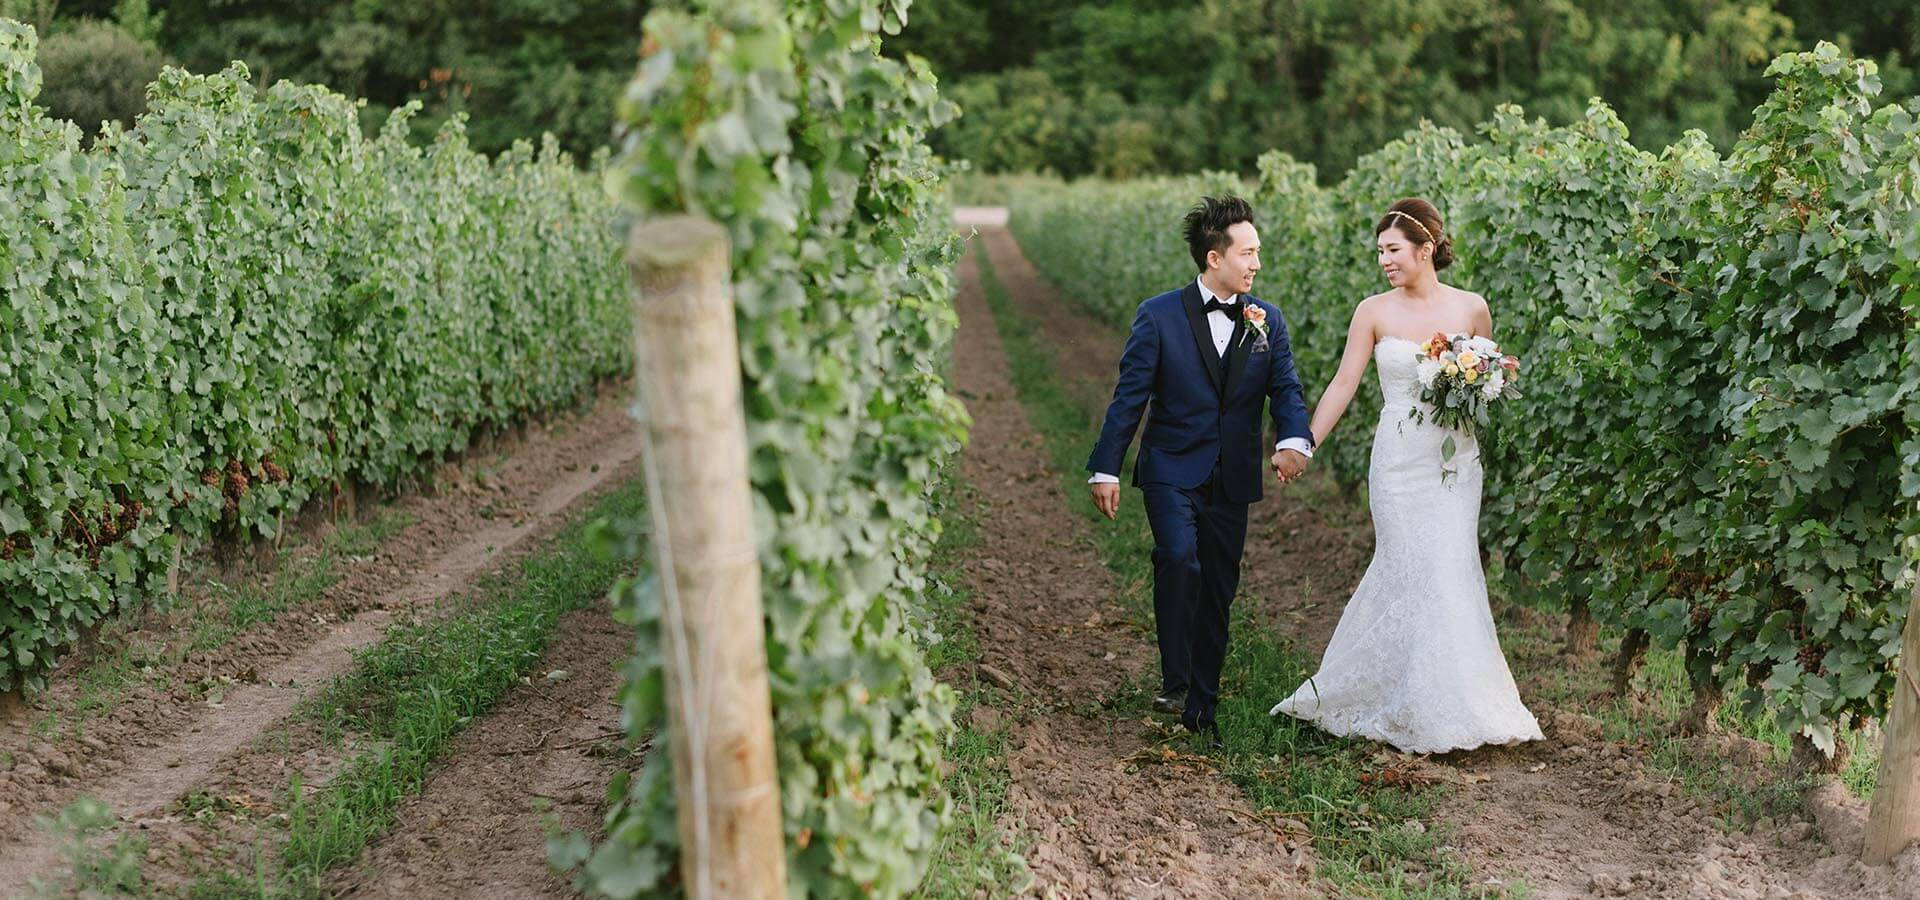 Hero image for Erica and Enho's Vineyard Wedding at Château des Charmes